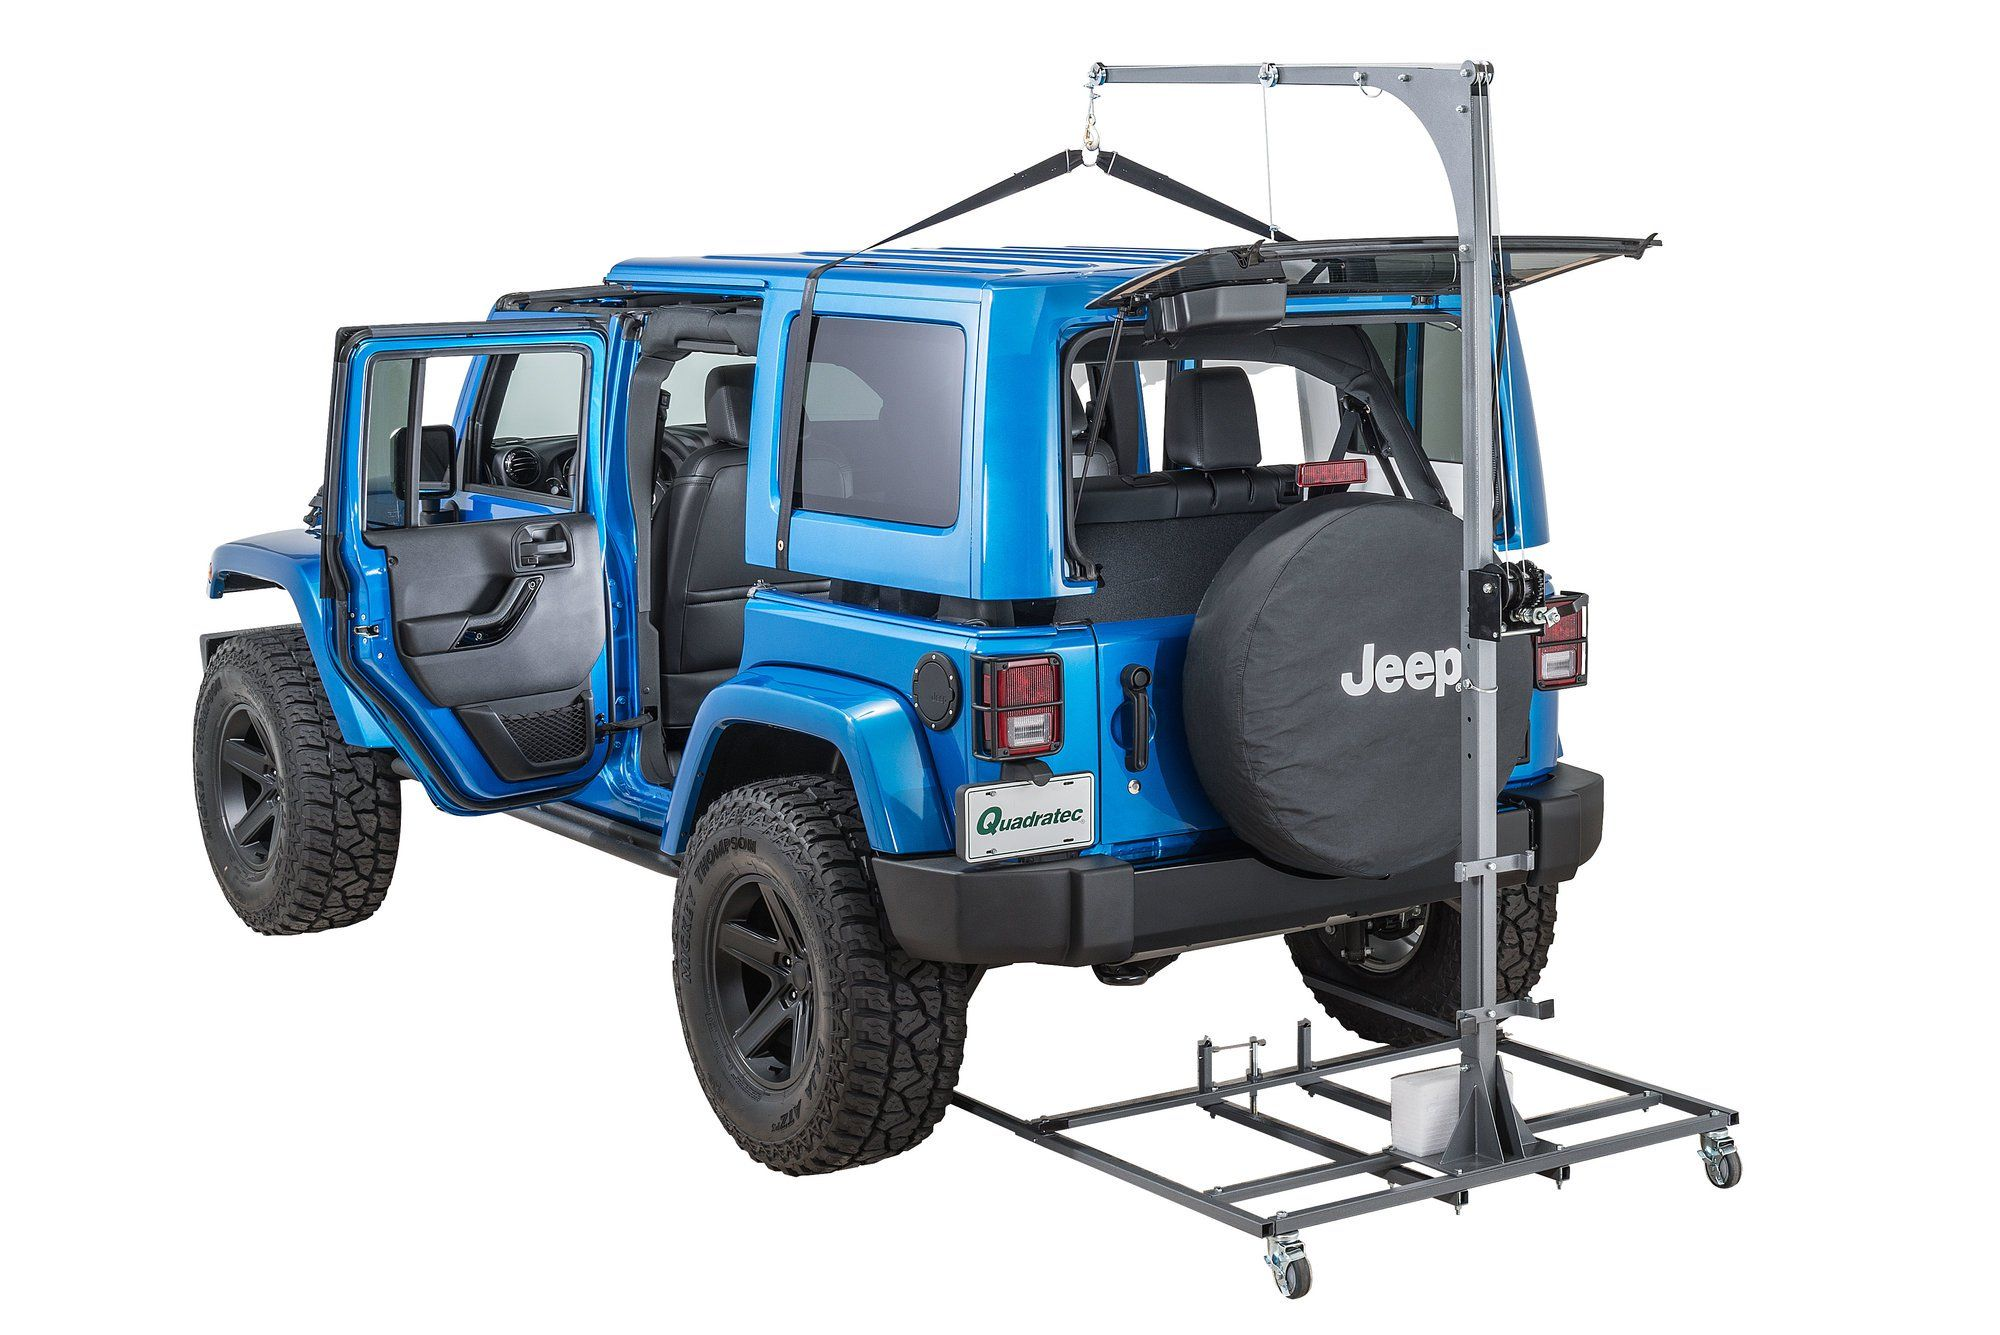 The Best Way To Remove A Jeep Hardtop Jeep Wrangler Jk Wrangler